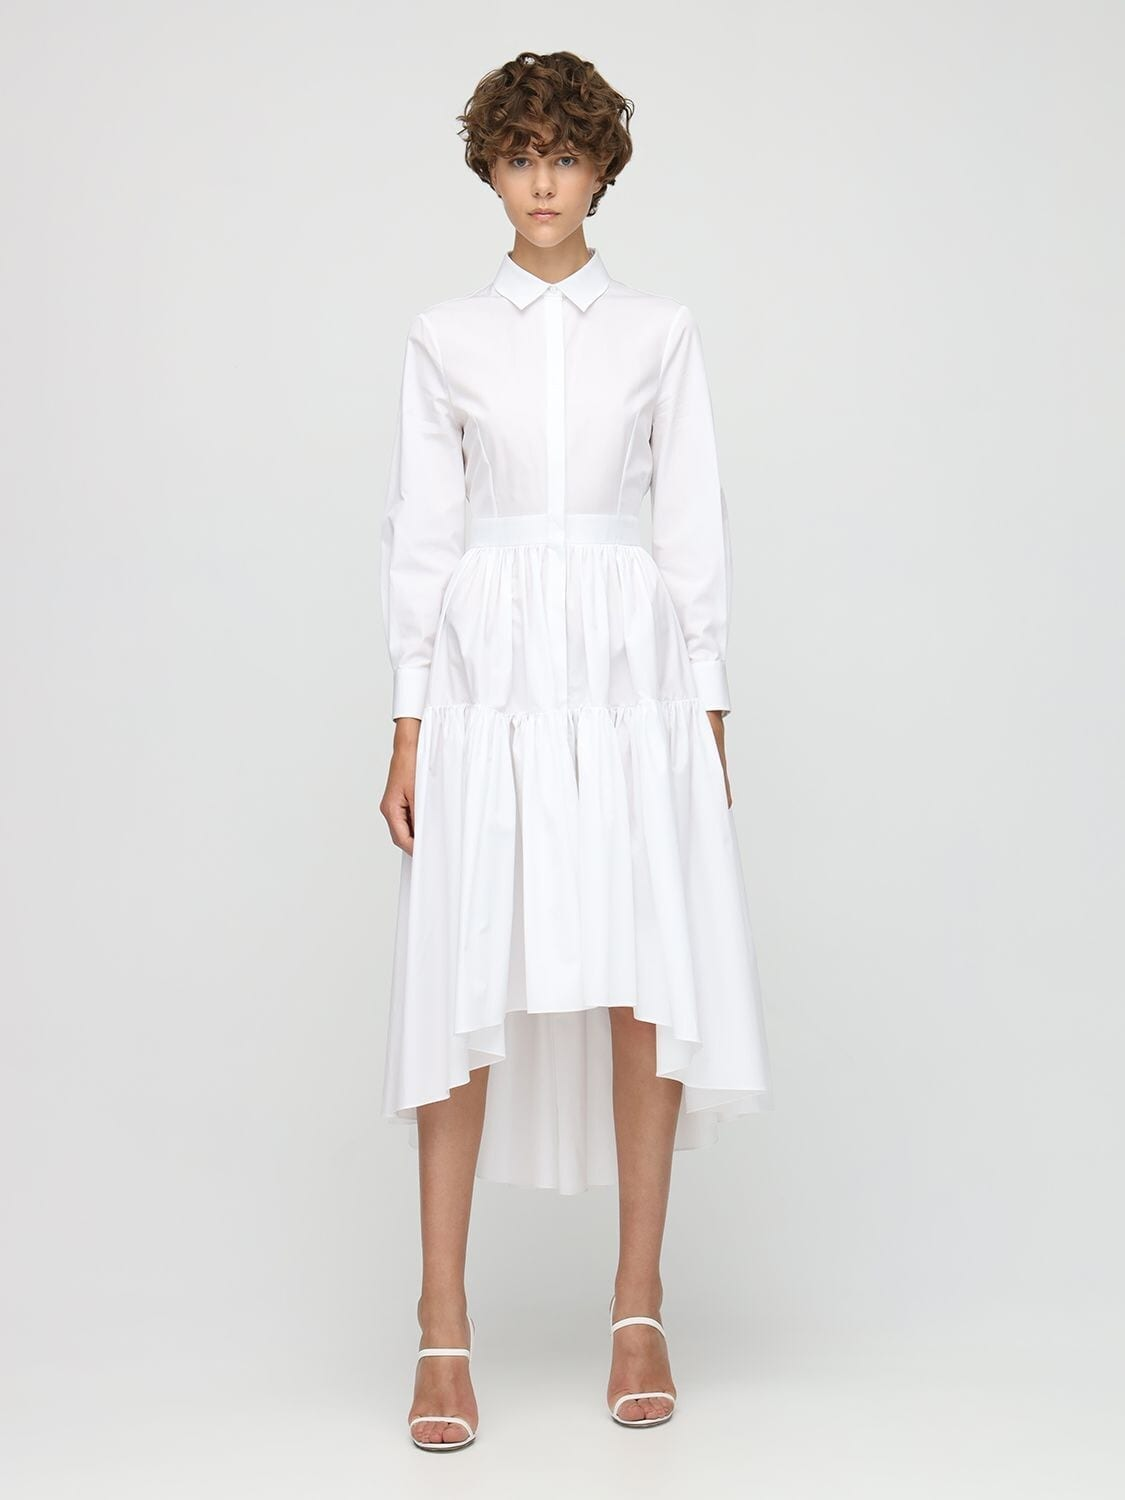 ALEXANDER MCQUEEN Cotton Poplin Shirt Midi Dress